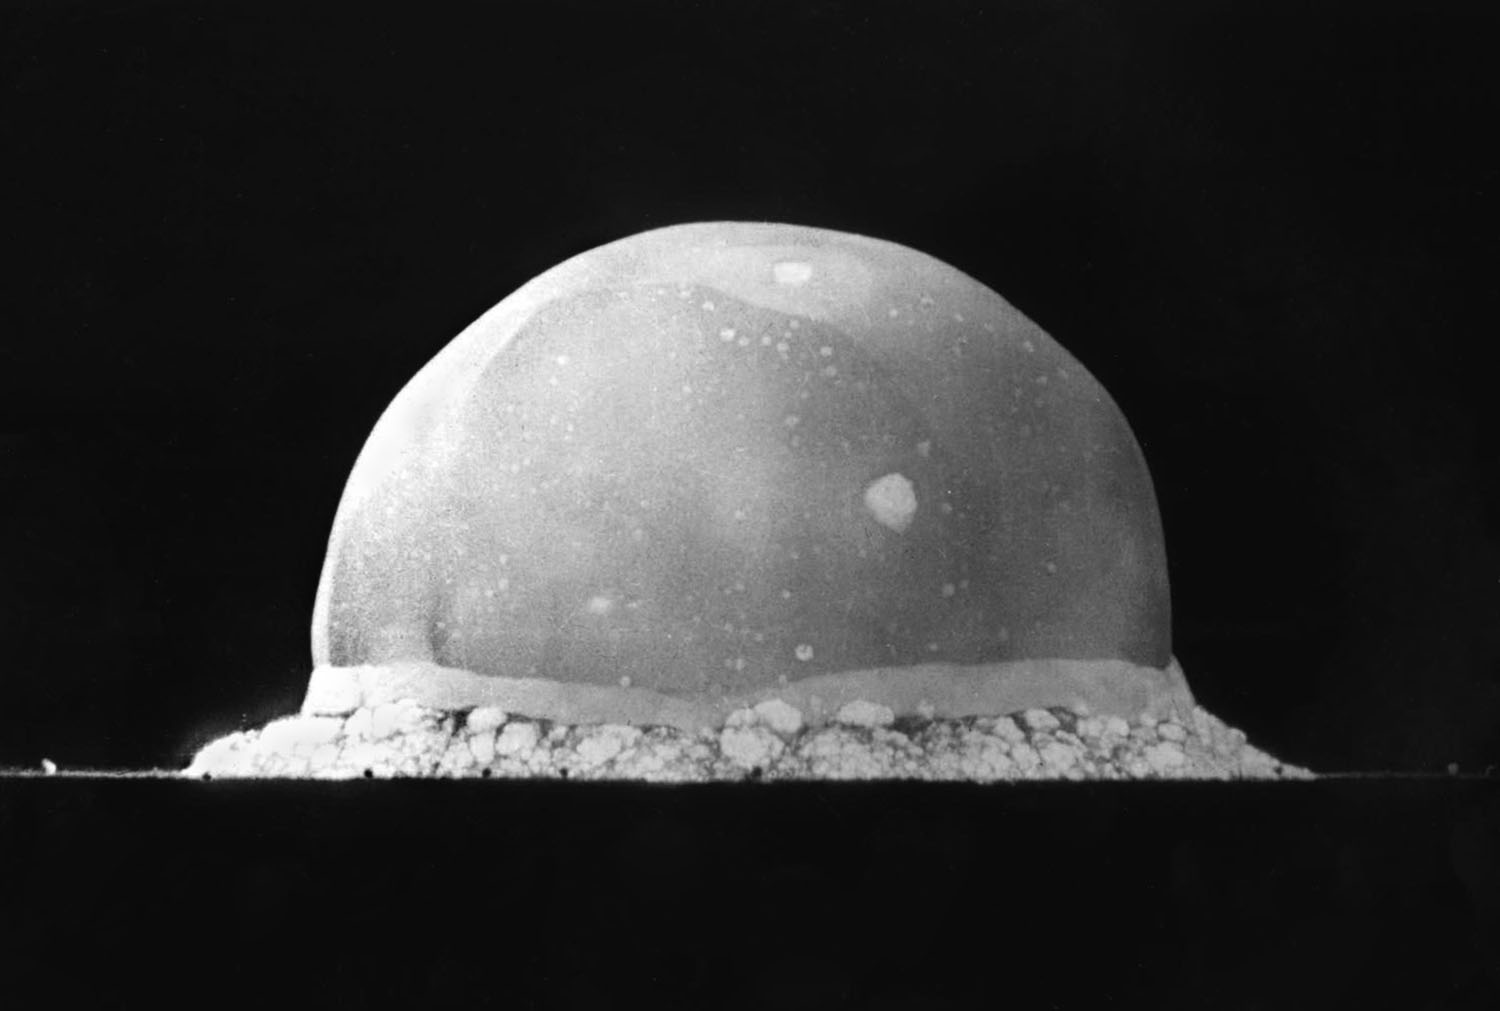 The Trinity explosion 0.016 seconds after detonation, 1945